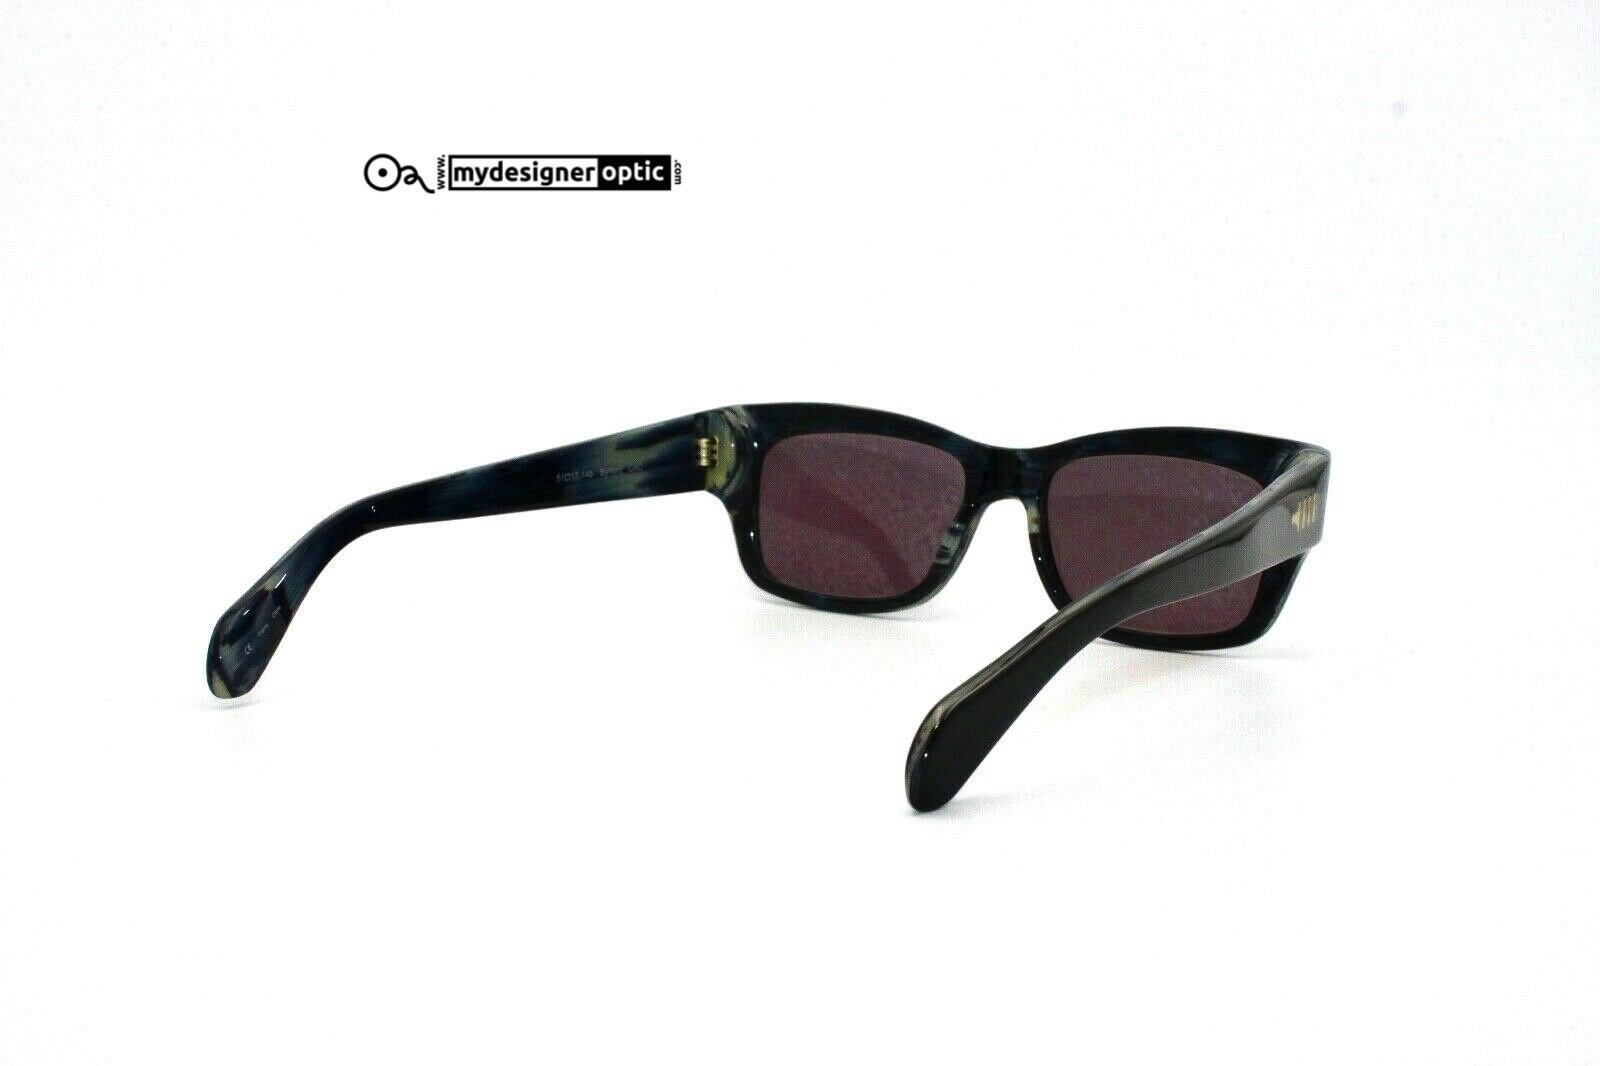 Mosley Tribes Sunglasses Limited Edition 51-17-145 Sylford CAD - Mydesigneroptic